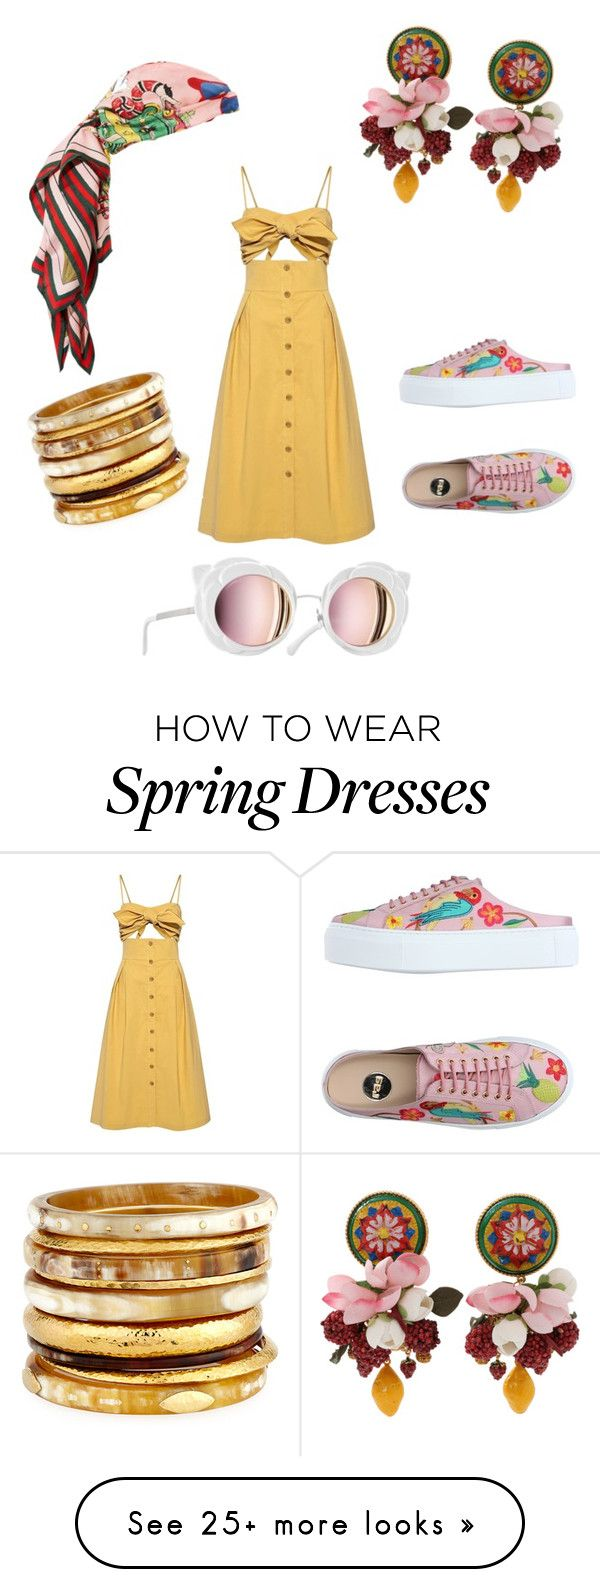 """""""Sneakers & Dress a la Tropicana"""" by mayaevans-i on Polyvore featuring Sea, New York, RAS, Dolce&Gabbana, Ashley Pittman, Chanel and Gucci"""